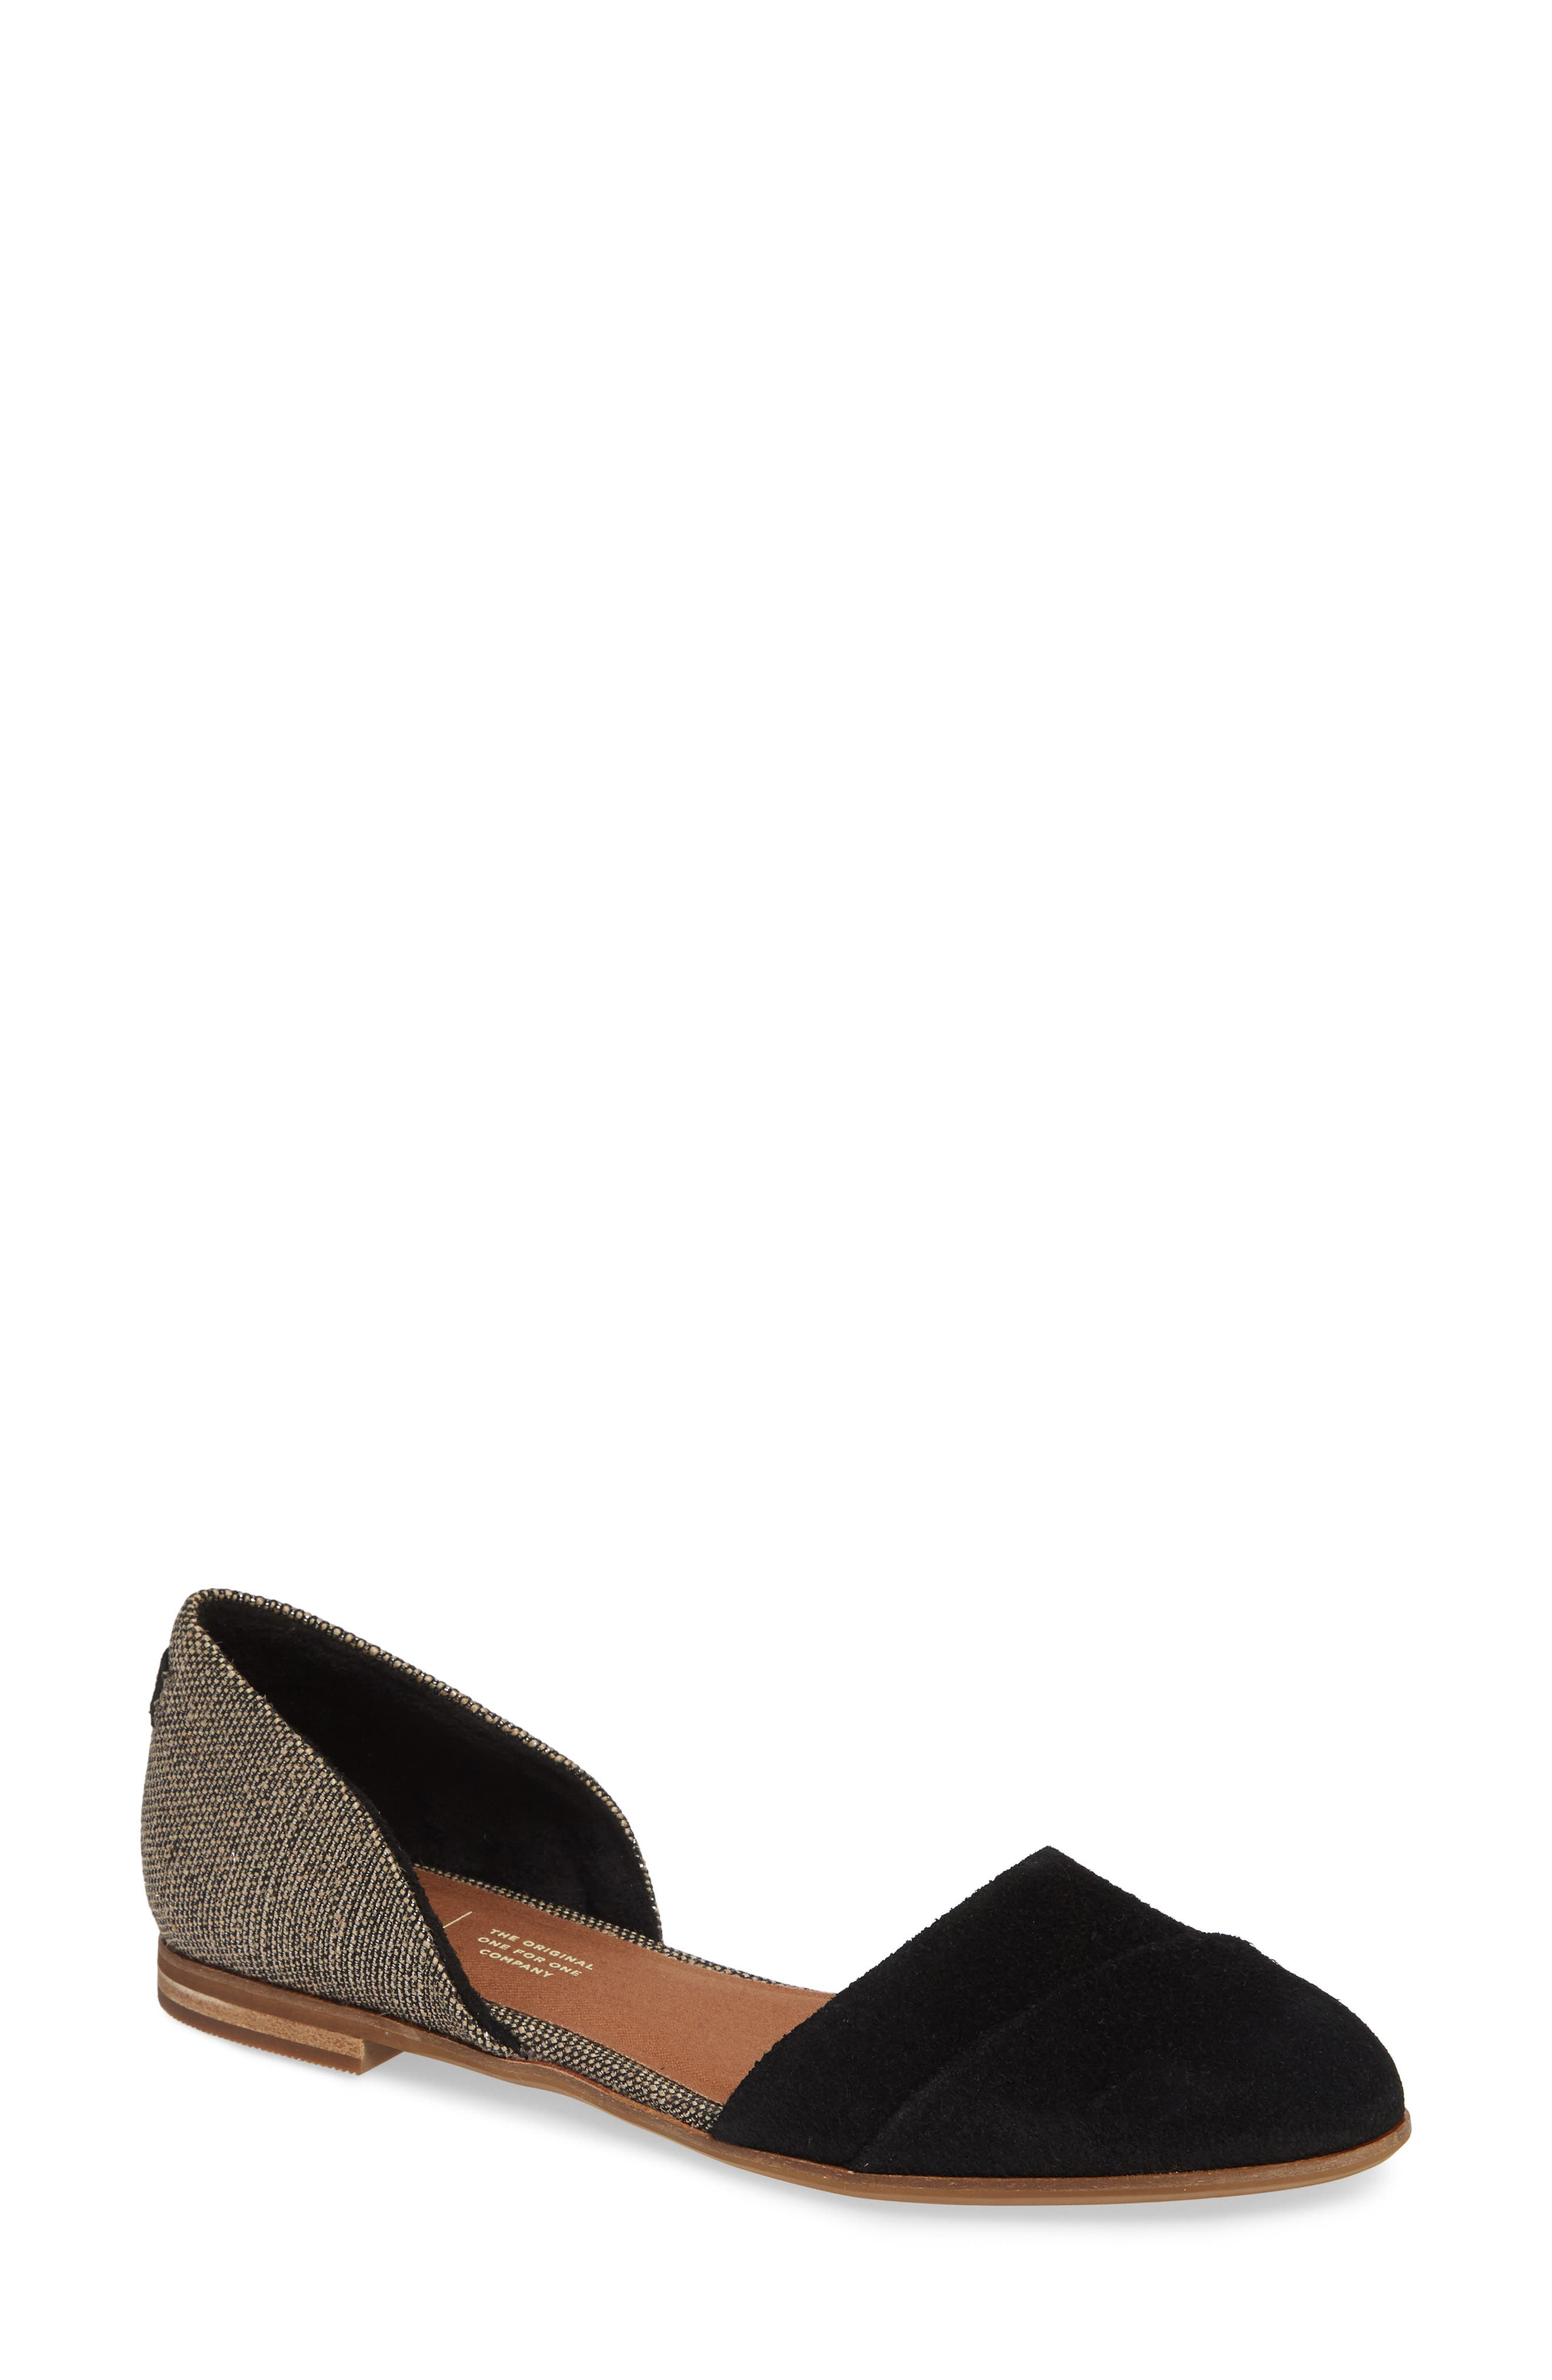 TOMS Jutti d'Orsay Flat, Main, color, BLACK SUEDE/ METALLIC WOVEN